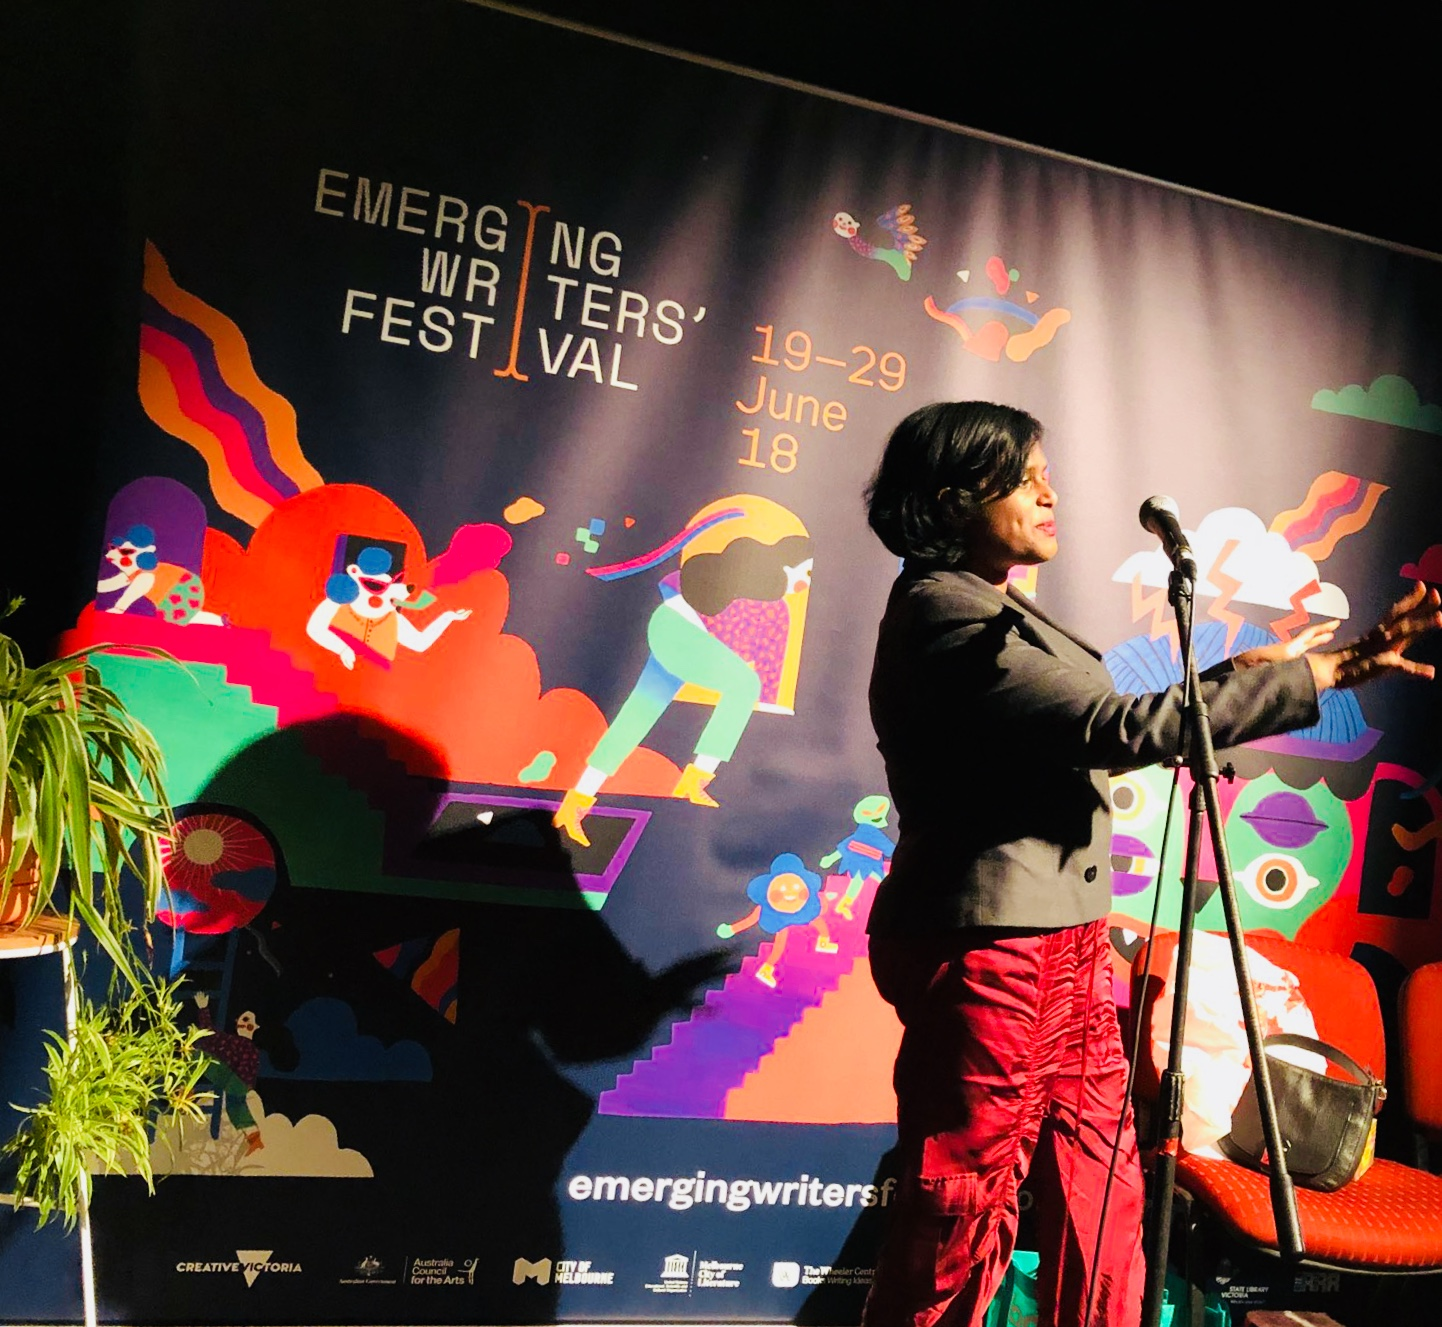 Farah Farouque speaking at Speakeasy: Money event as part of the Emerging Writers Festival 2018 at Brunswick Mechanics Institute in Melbourne.